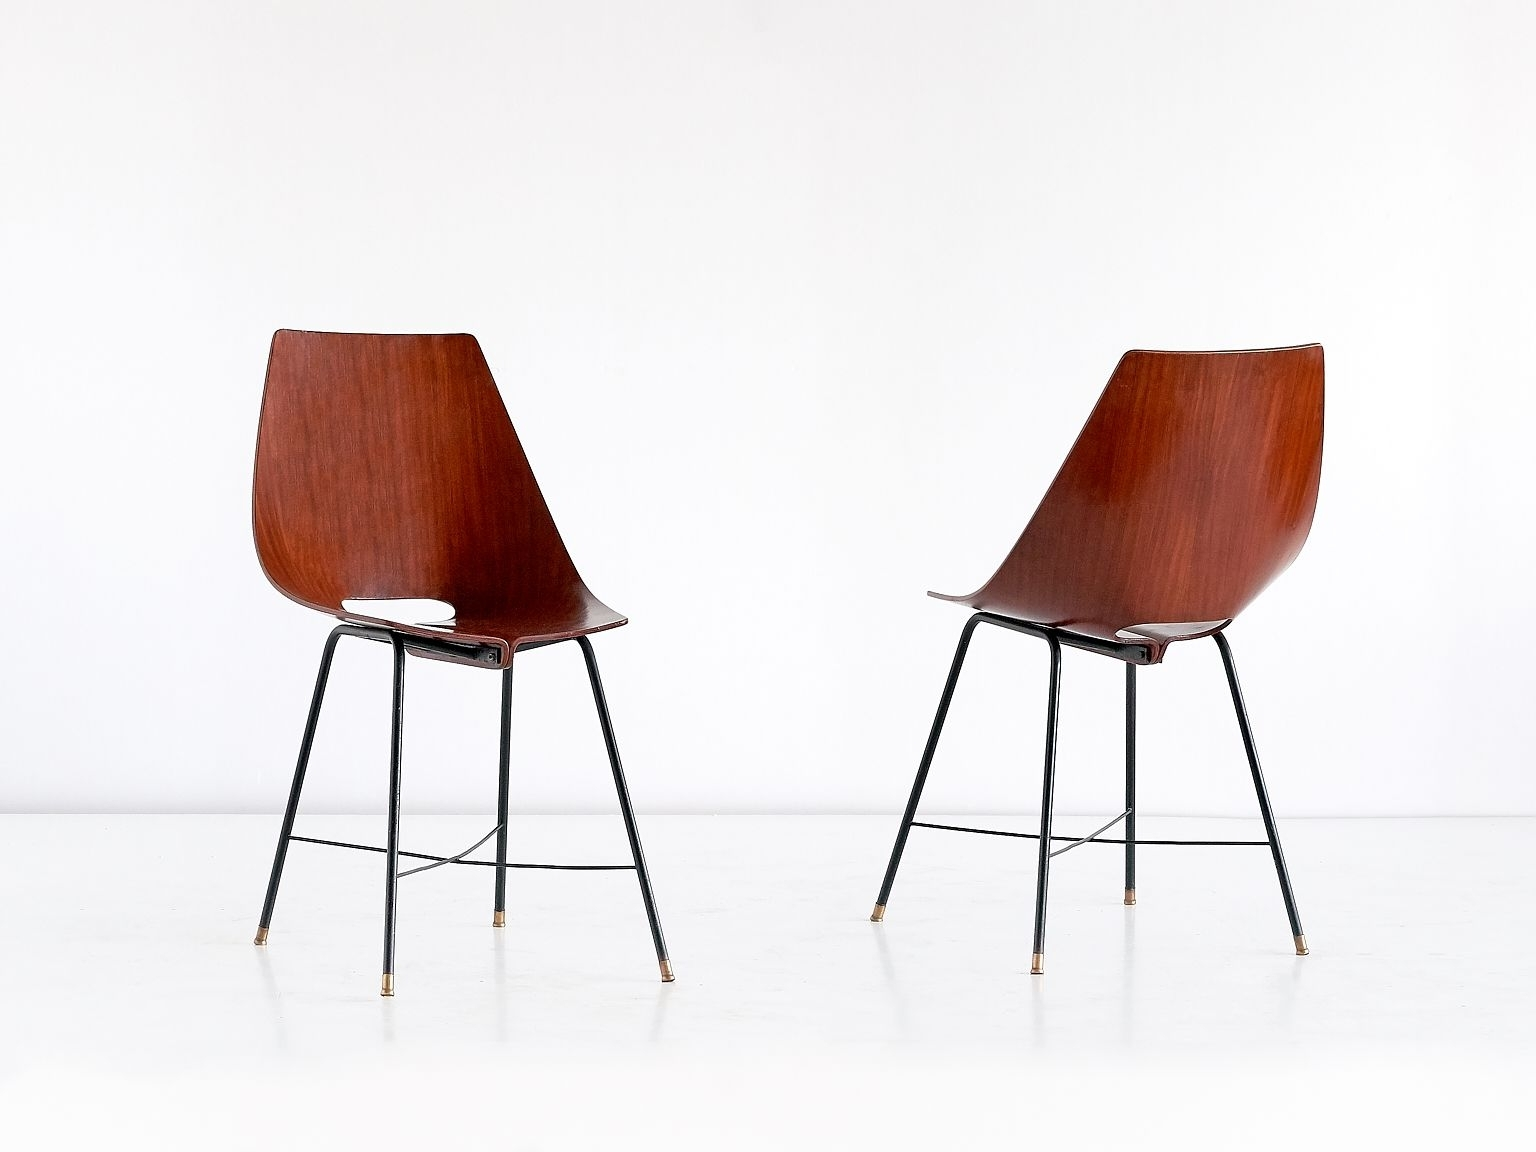 Inspiration about Plywood & Metal Brown Dining Chairs Intended For Newest Italian 127 B Plywood Dining Chairs From Societá Compensati Curvati (#19 of 20)